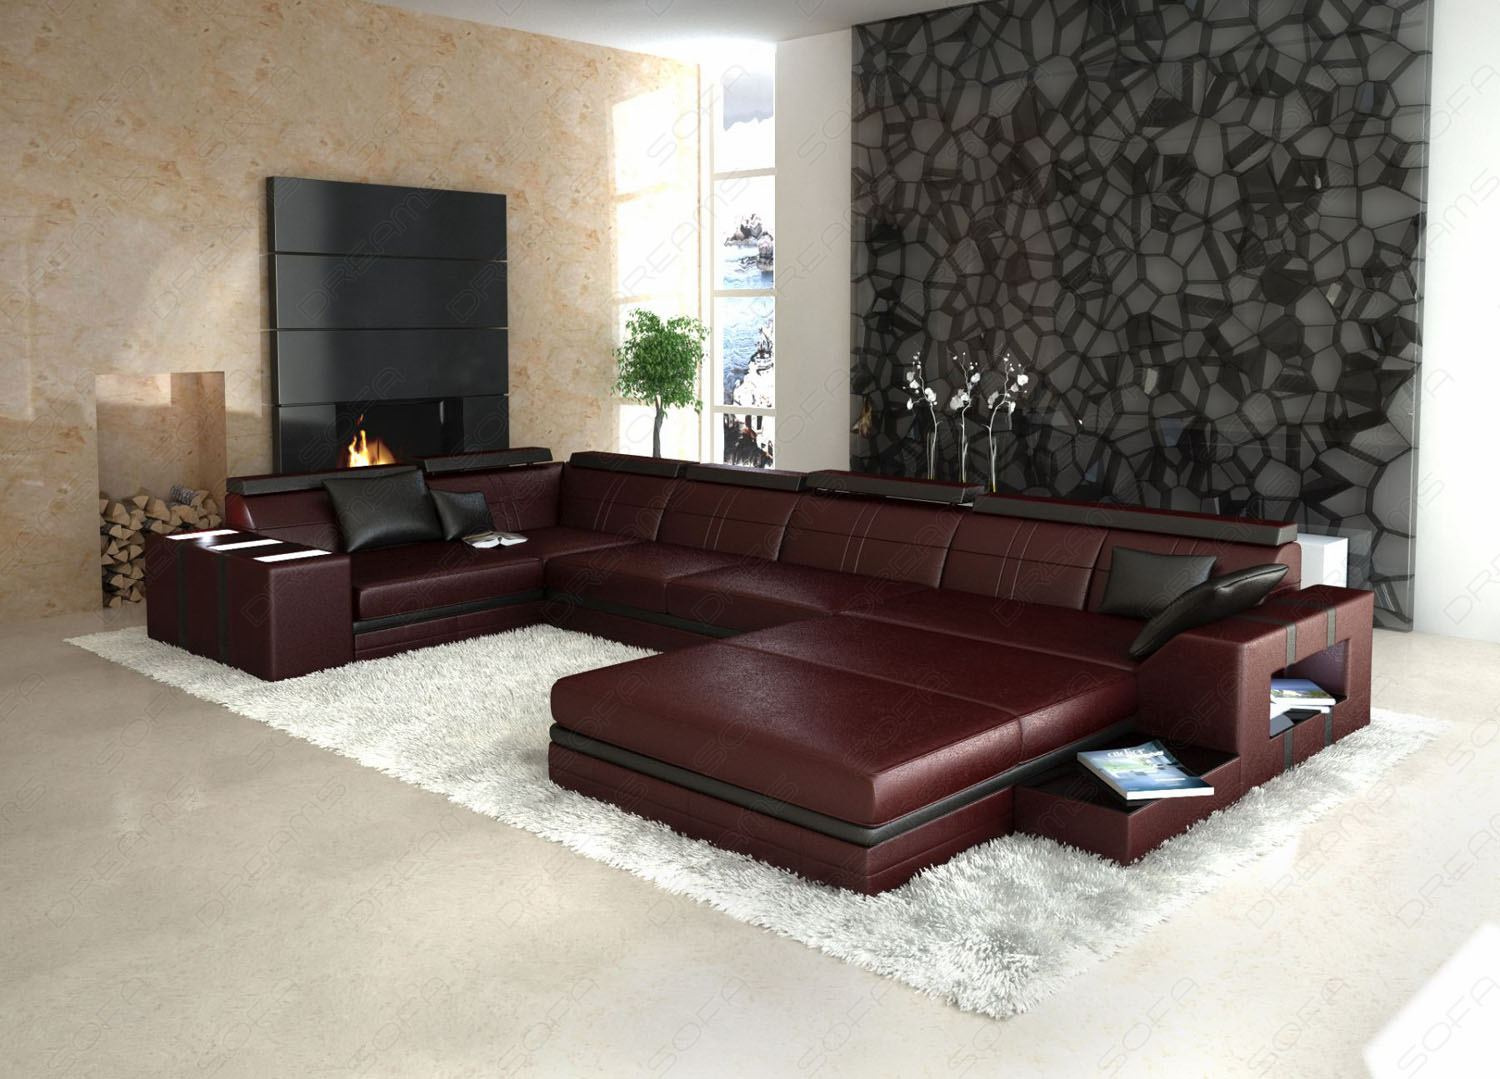 sofa u form federkern carprola for. Black Bedroom Furniture Sets. Home Design Ideas